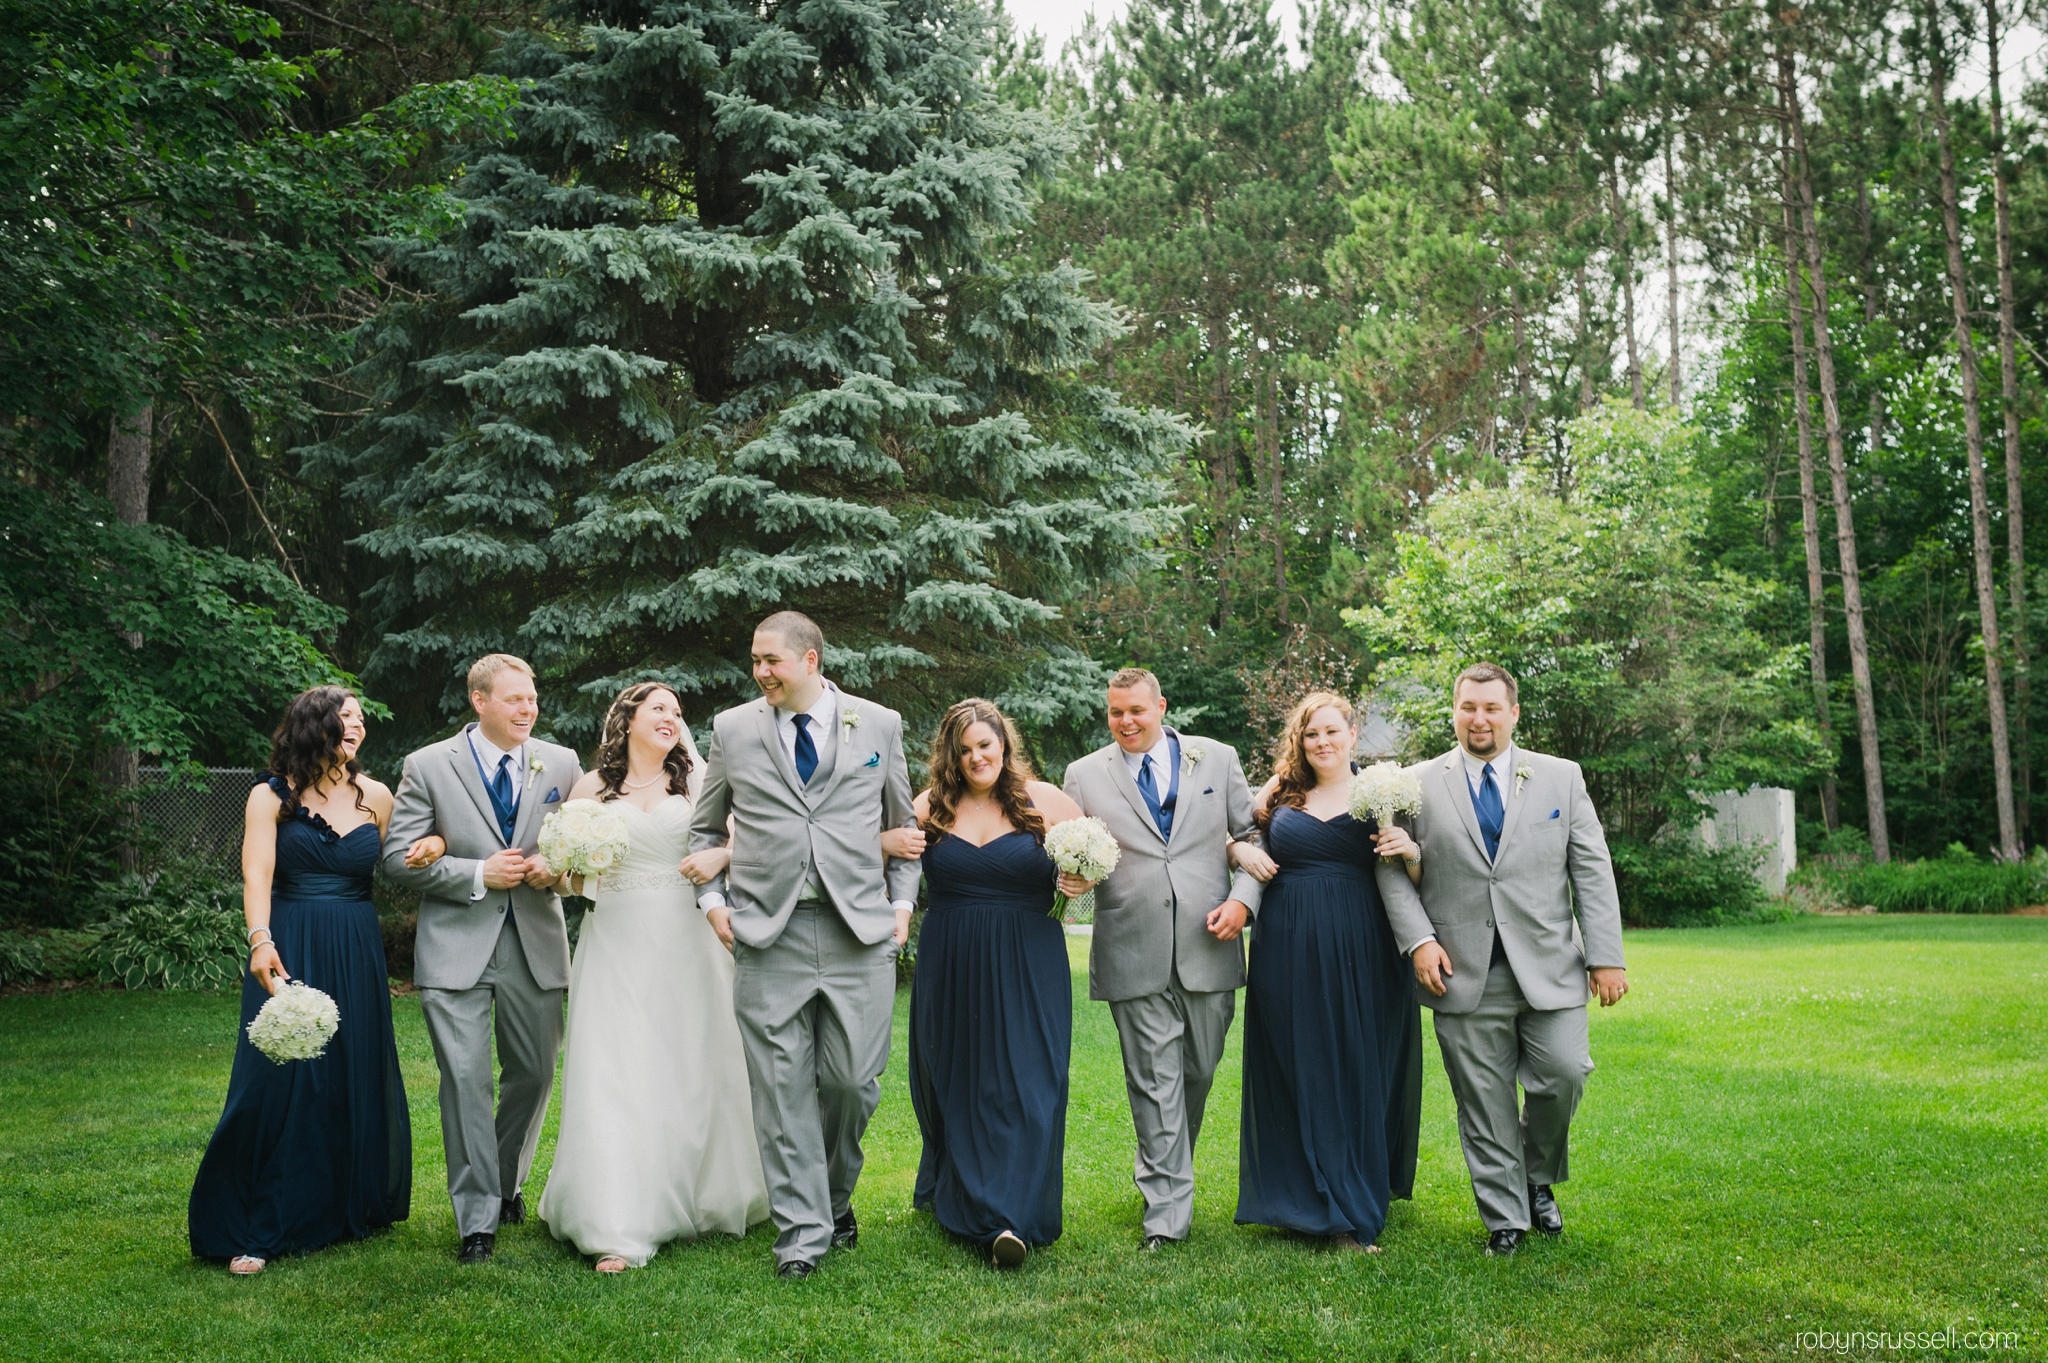 36-walking-shot-bridal-party-laughing.jpg